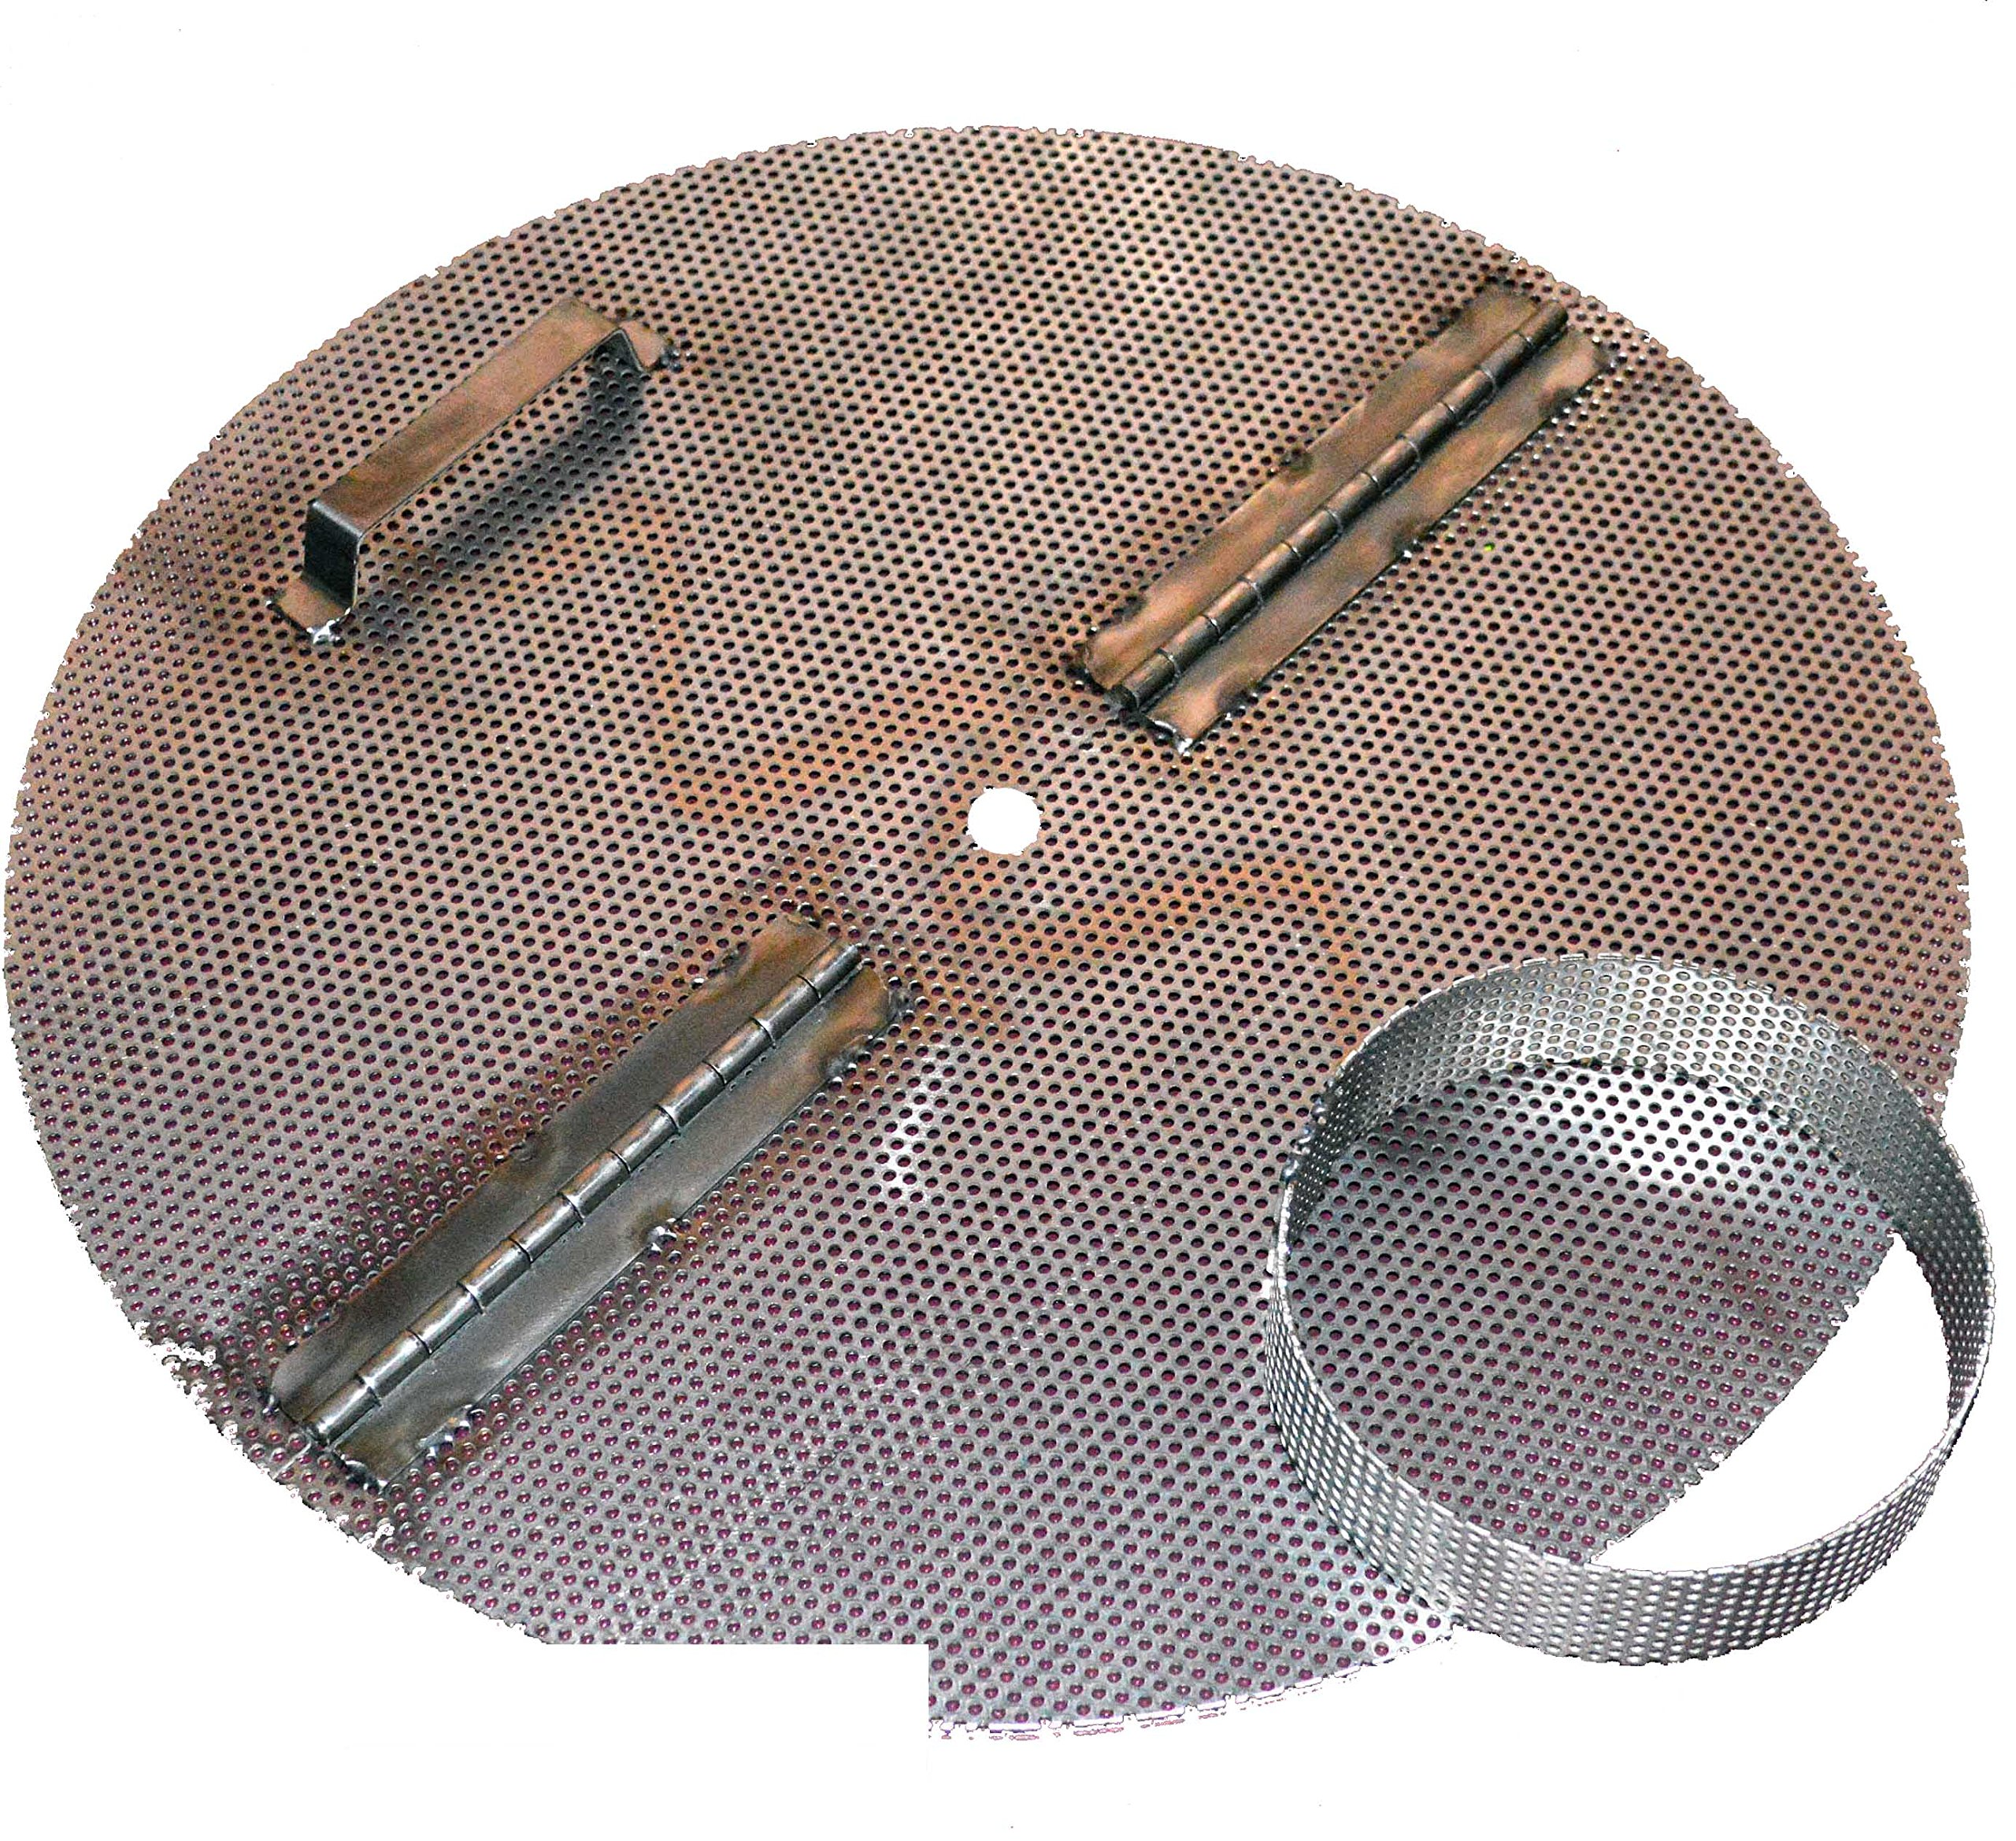 15'' Jaybird False Bottom for Keg / Keggle. Reverse Hinge, Handle, Hole, + Level 1 Filter Stand by NorCal Brewing Soutions